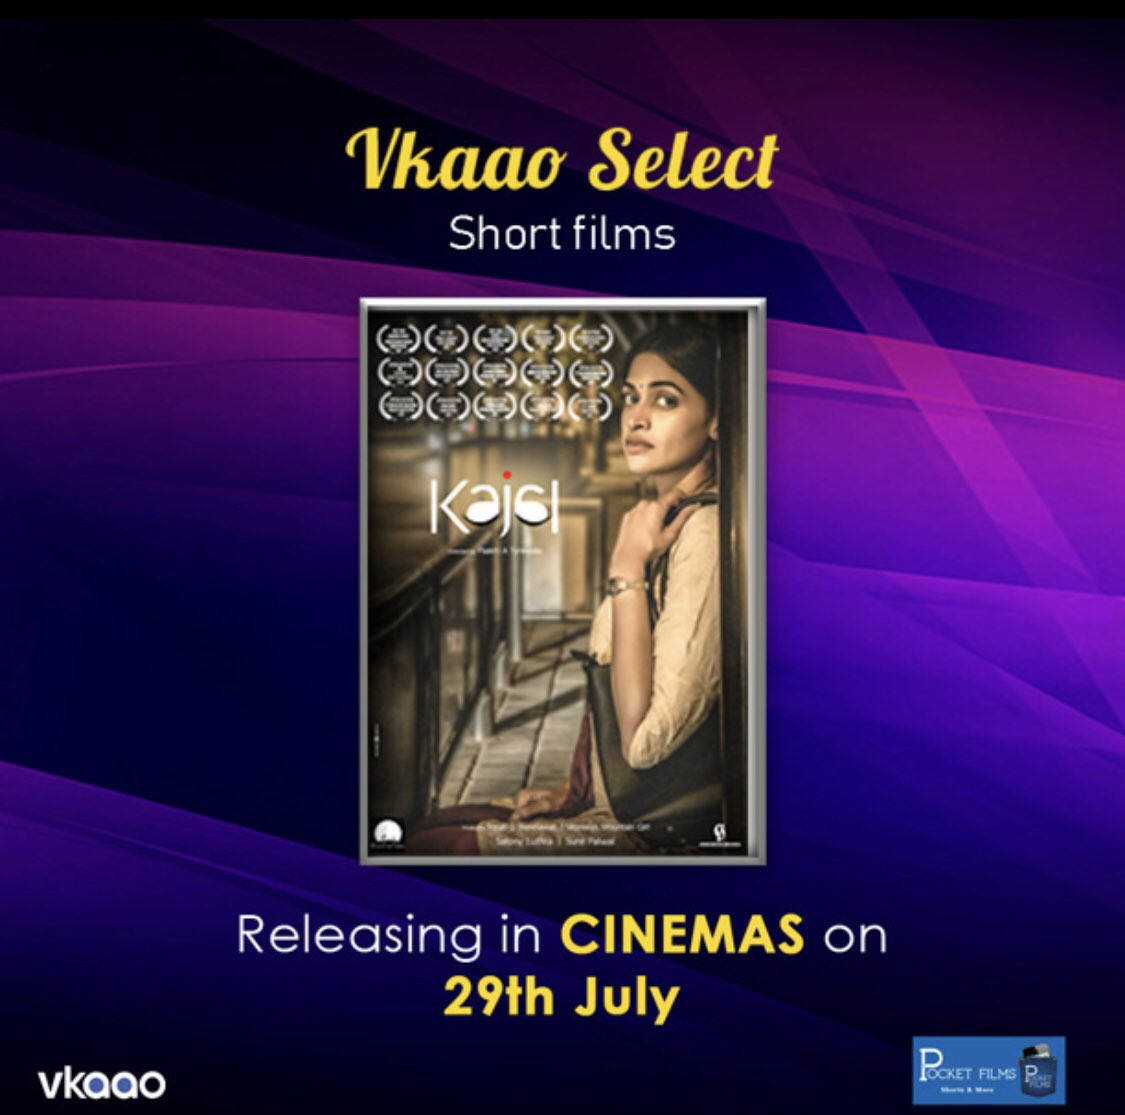 A #womansjourney to finding herself starts in an unlikely place. Watch 'Kajal' directed by @PaakhiATyrewala starring @salonyluthra as part of the #anthology of #shortfilms to be screened in @_PVRCinemas 5 Indian cities. Tickets : http://bit.ly/VkaaoSelectShortFilms… #pocketfilms #letsvkaaopic.twitter.com/OinDdi9lmk